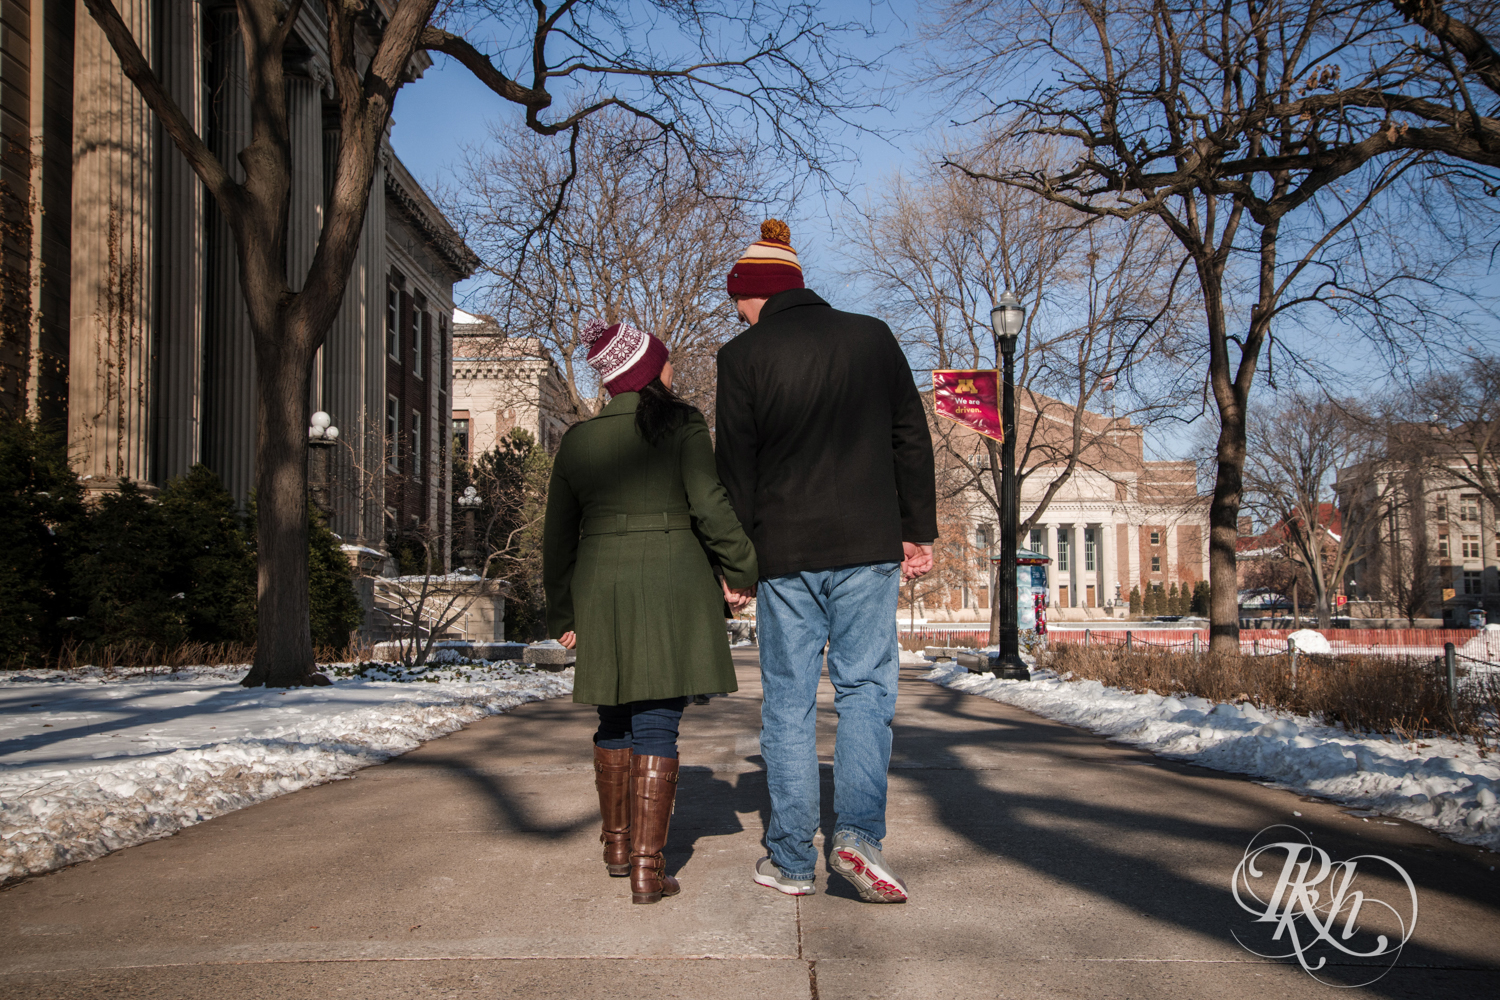 Jana & Paul - Minnesota Engagement Photography - University of Minnesota - RKH Images - Blog  (8 of 11).jpg